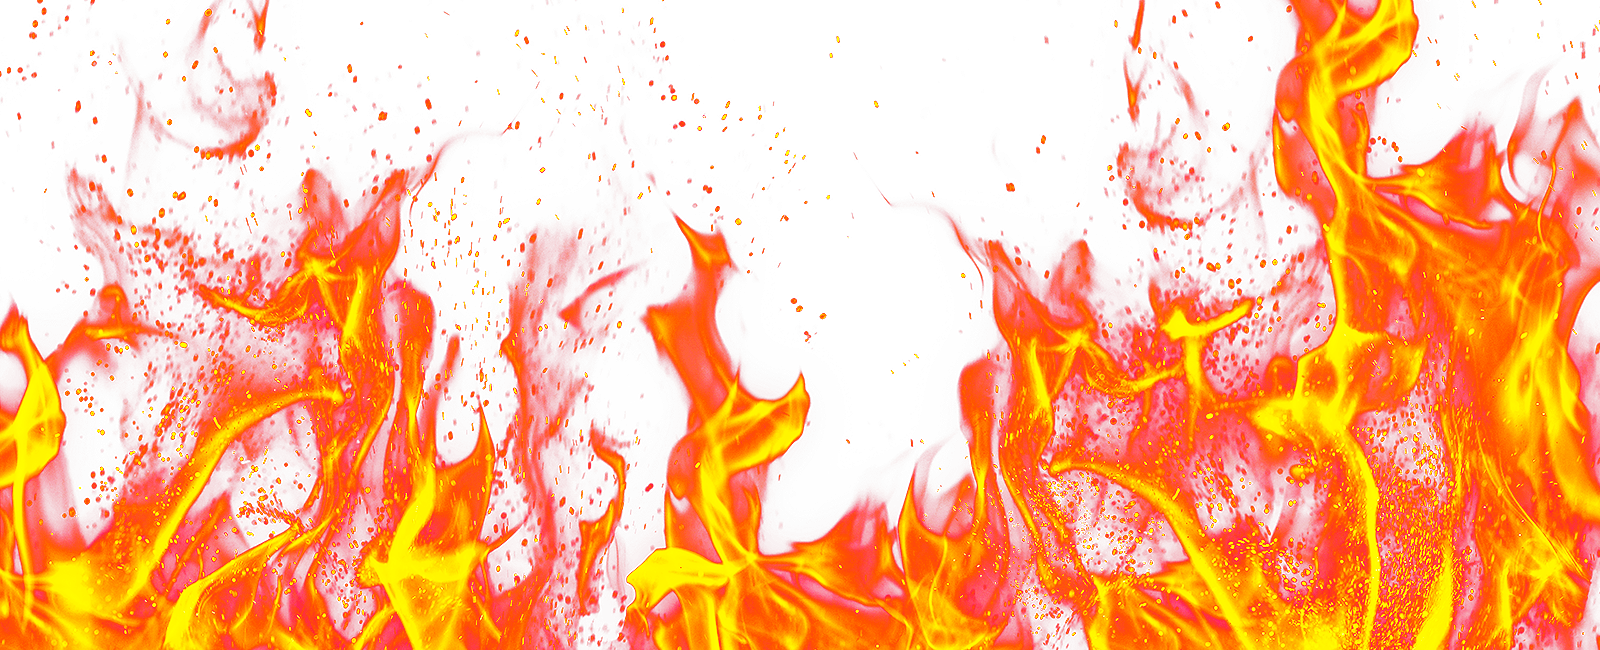 PNG File Name: Fire PNG Image Dimension: 1600x650. Image Type: .png. Posted  on: Jul 22nd, 2016. Category: Nature Tags: Fire - Fire PNG